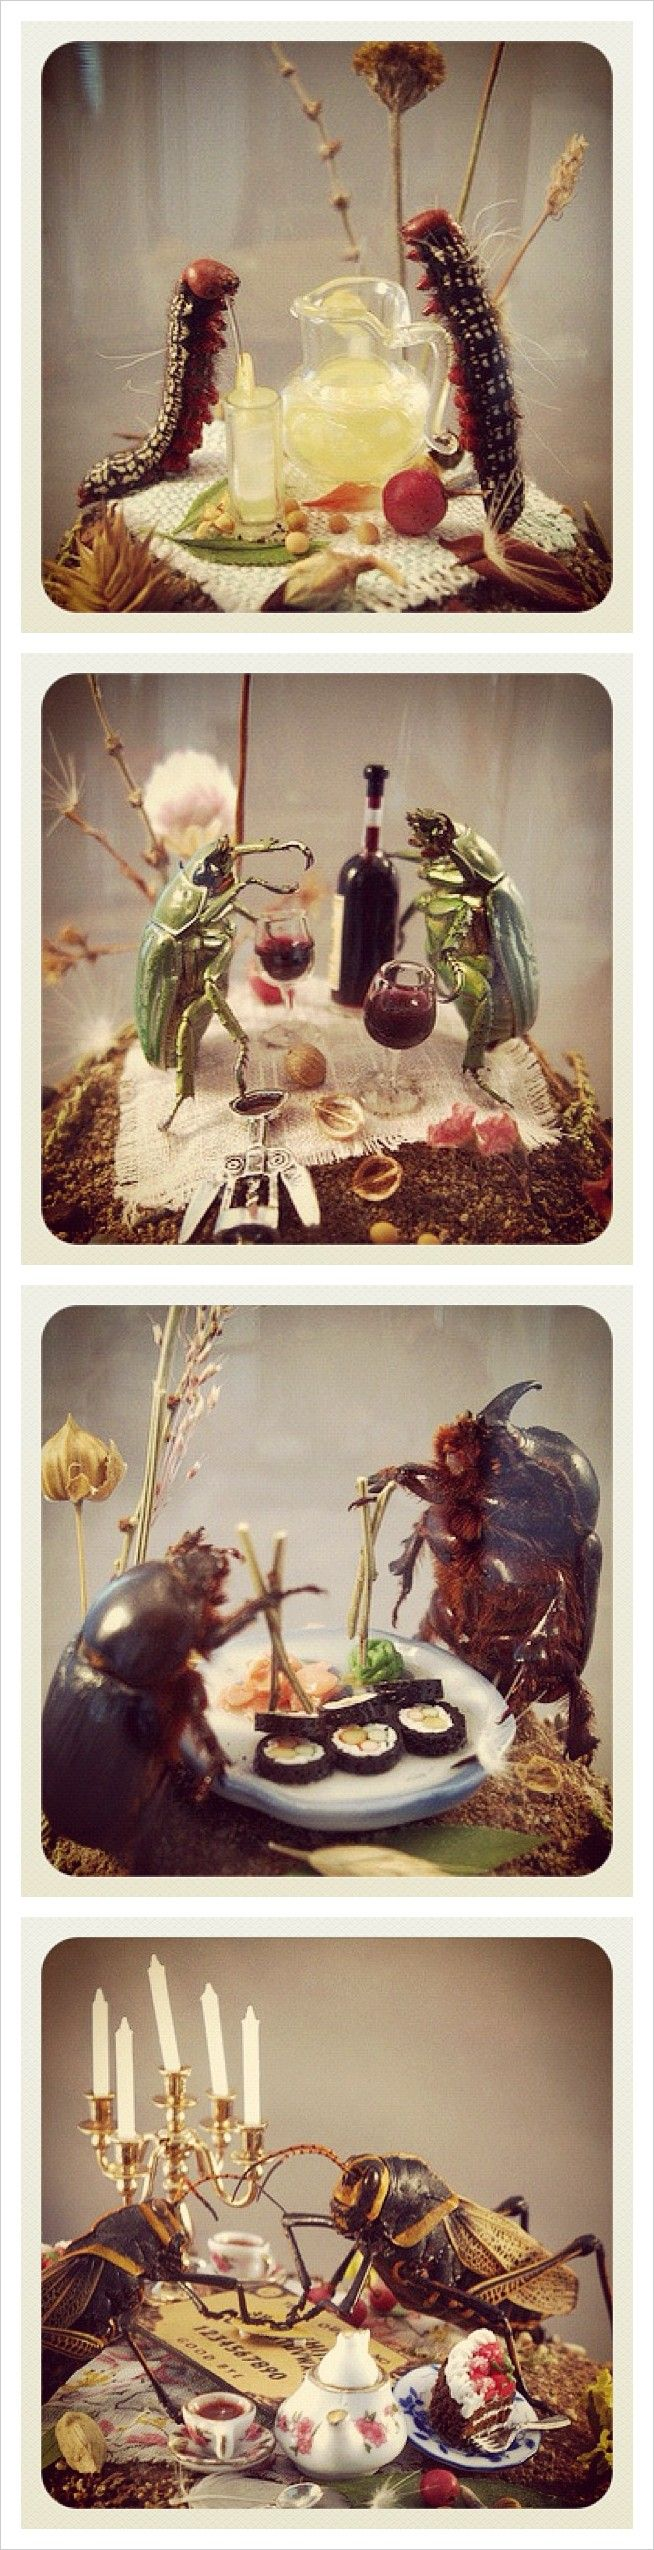 Insect Dioramas by Lisa Wood (Too funny!! The two grasshoppers playing with a Ouijia board and enjoying tea and cake is my favorite.)